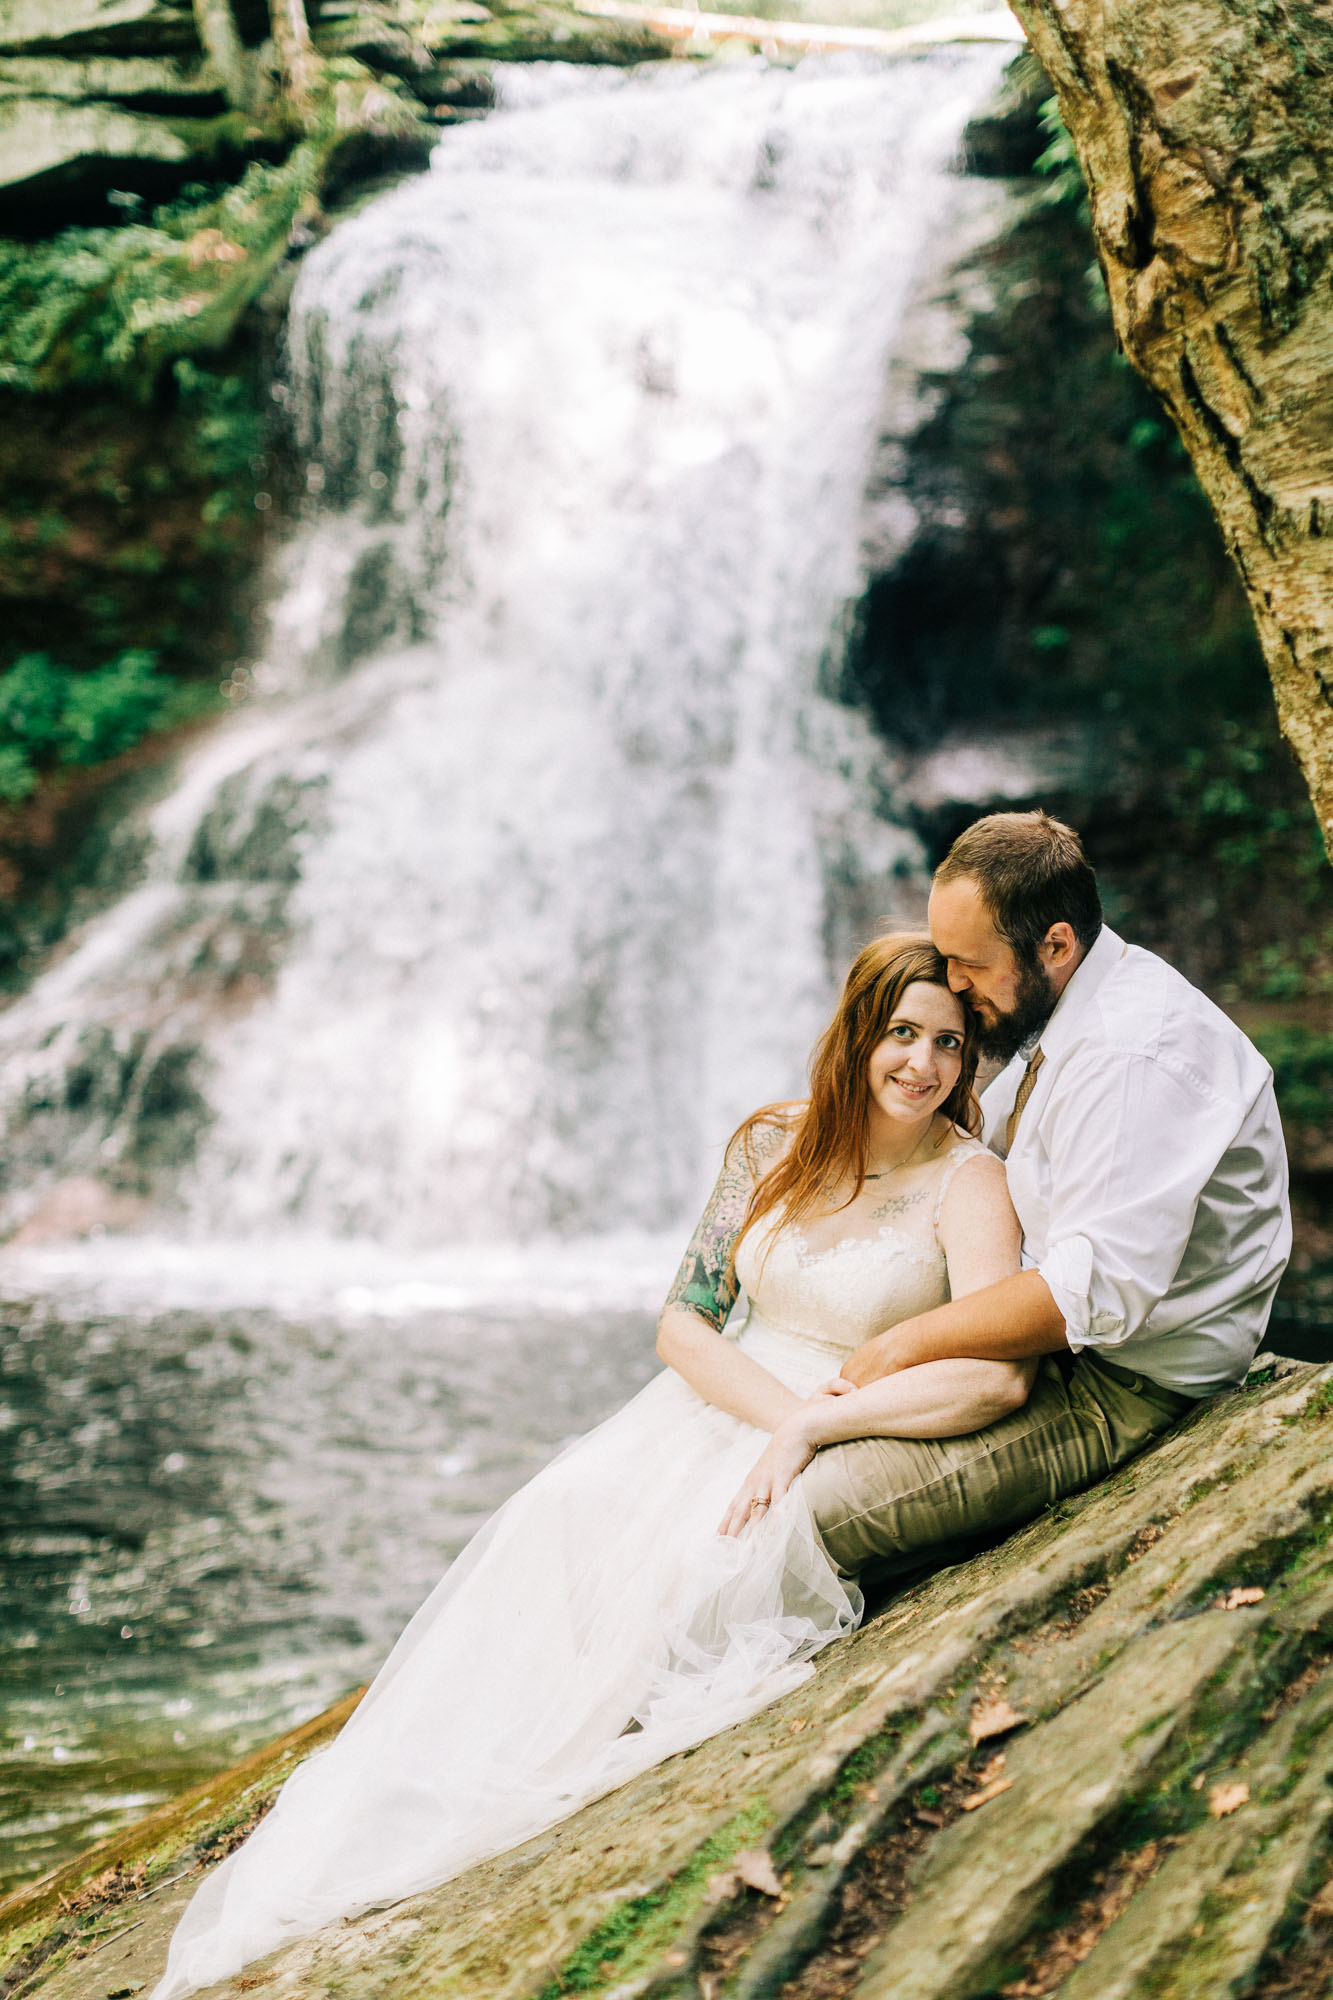 Ricketts-glen-pennsylvania-waterfall-elopement-23024.jpg